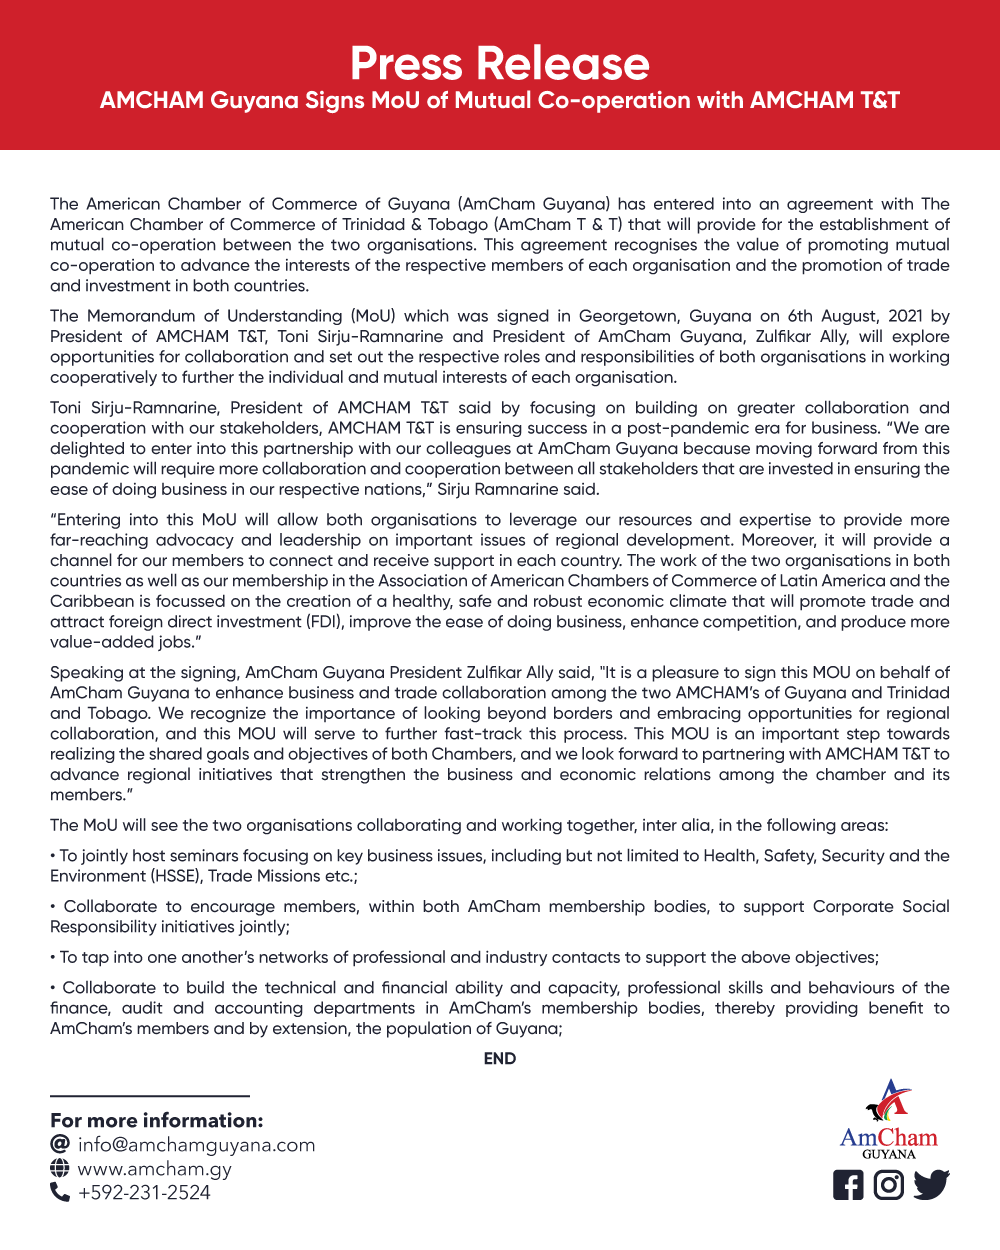 Press Release - MOU with AmCham T&T